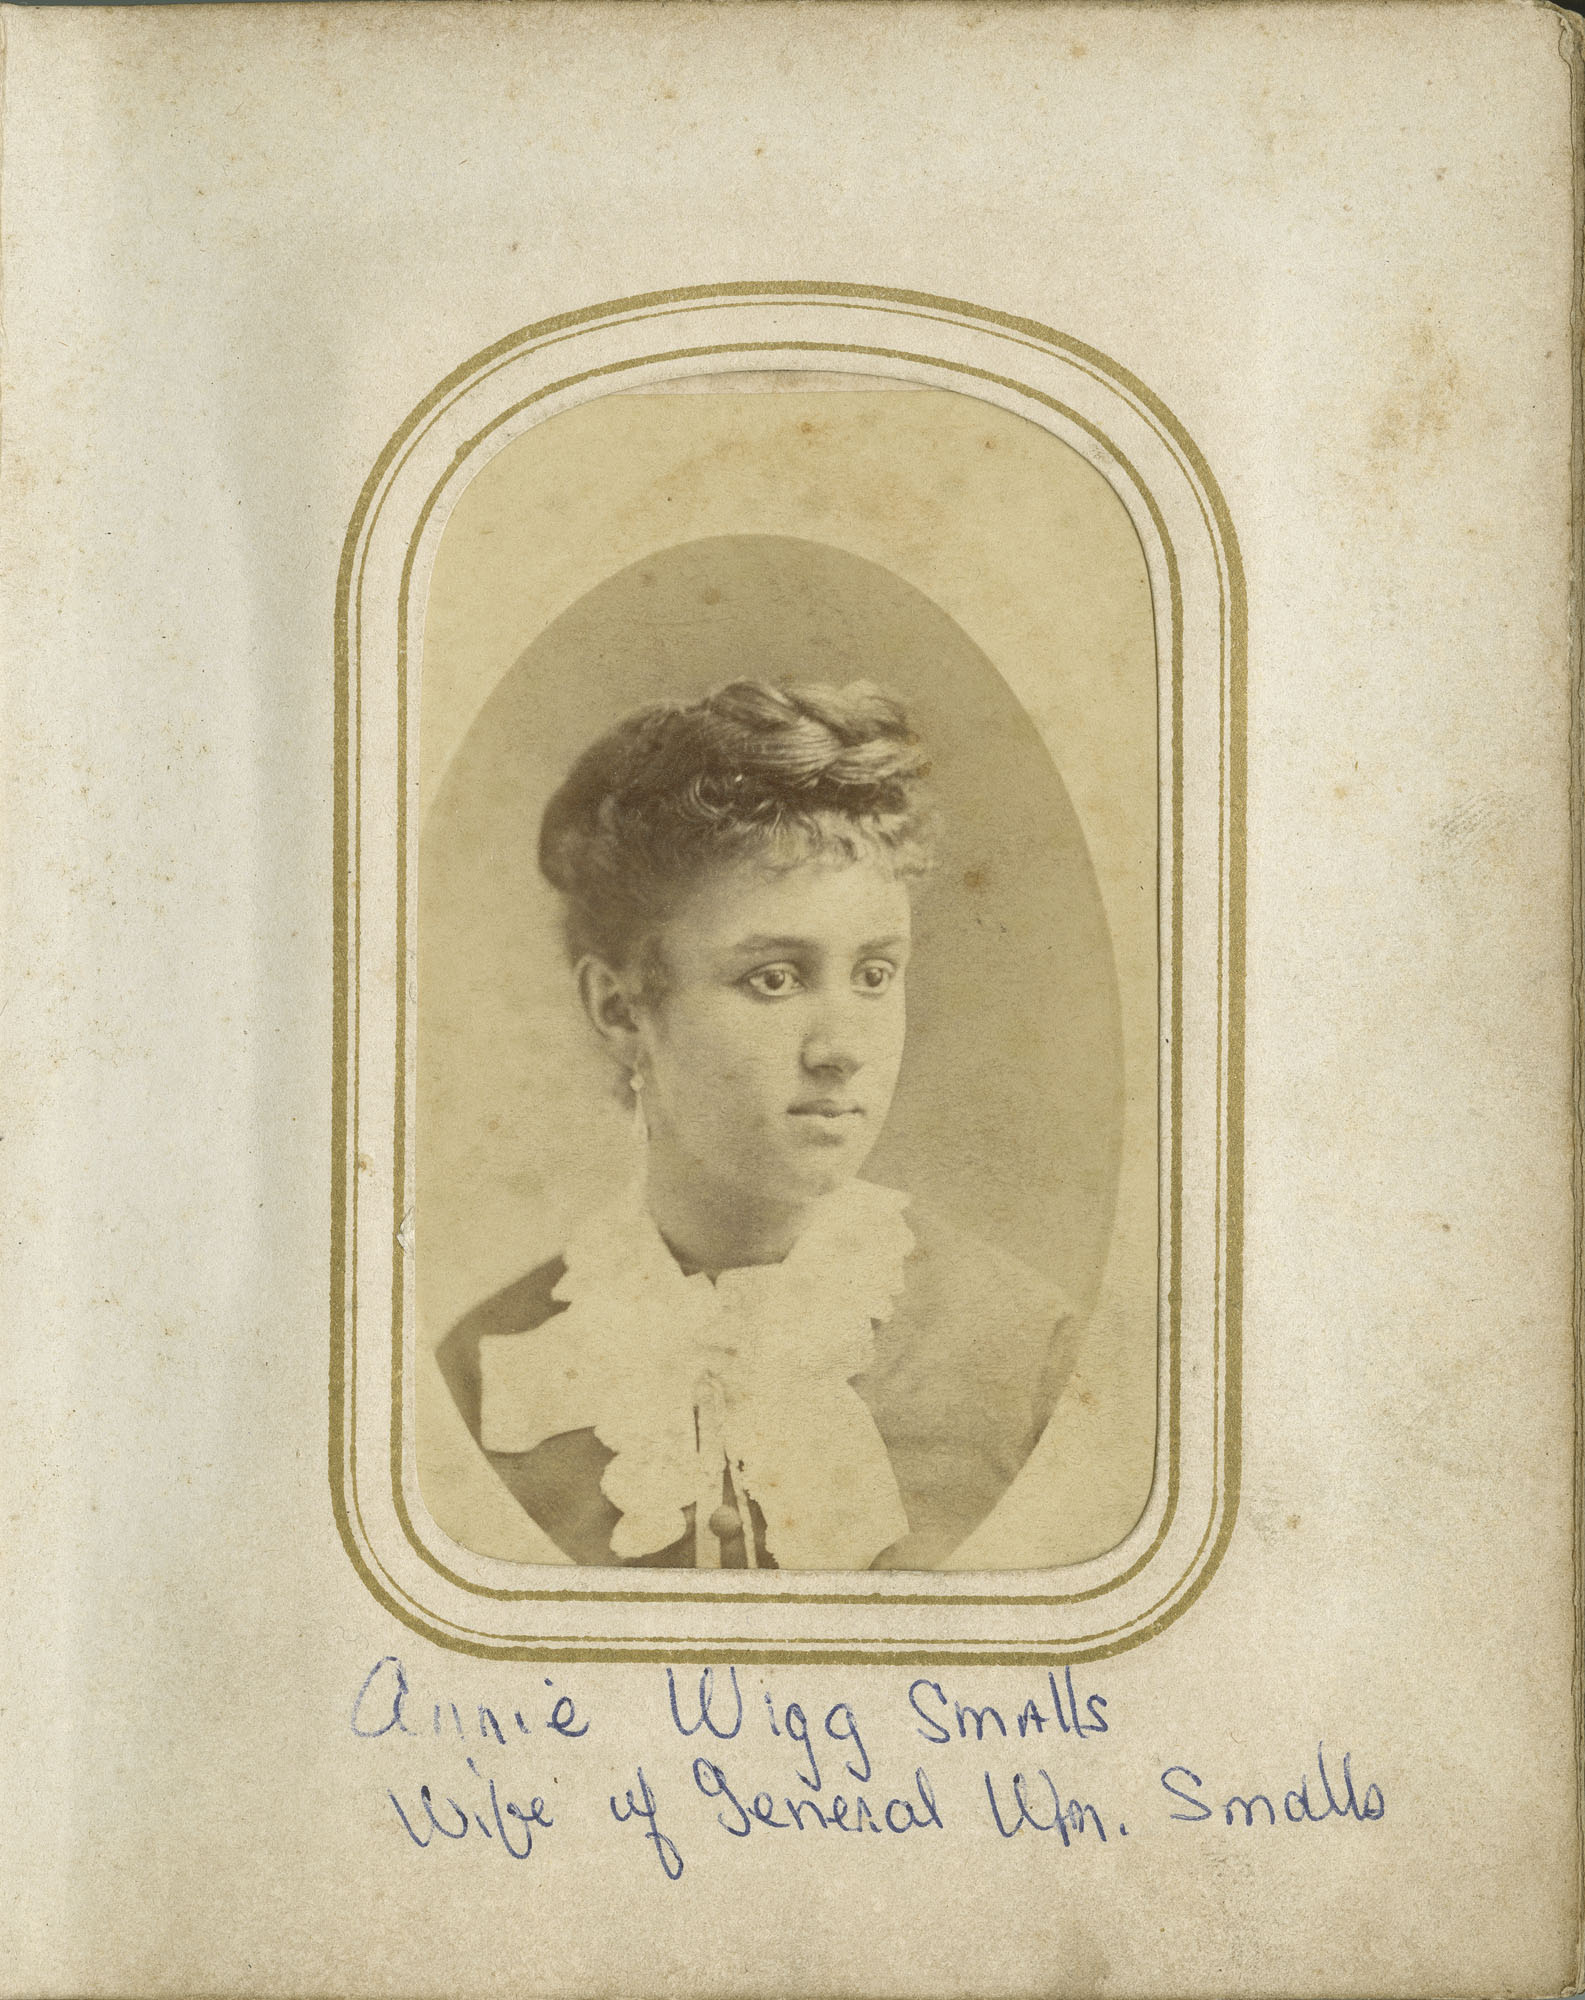 13. Photograph of Annie Wigg Smalls